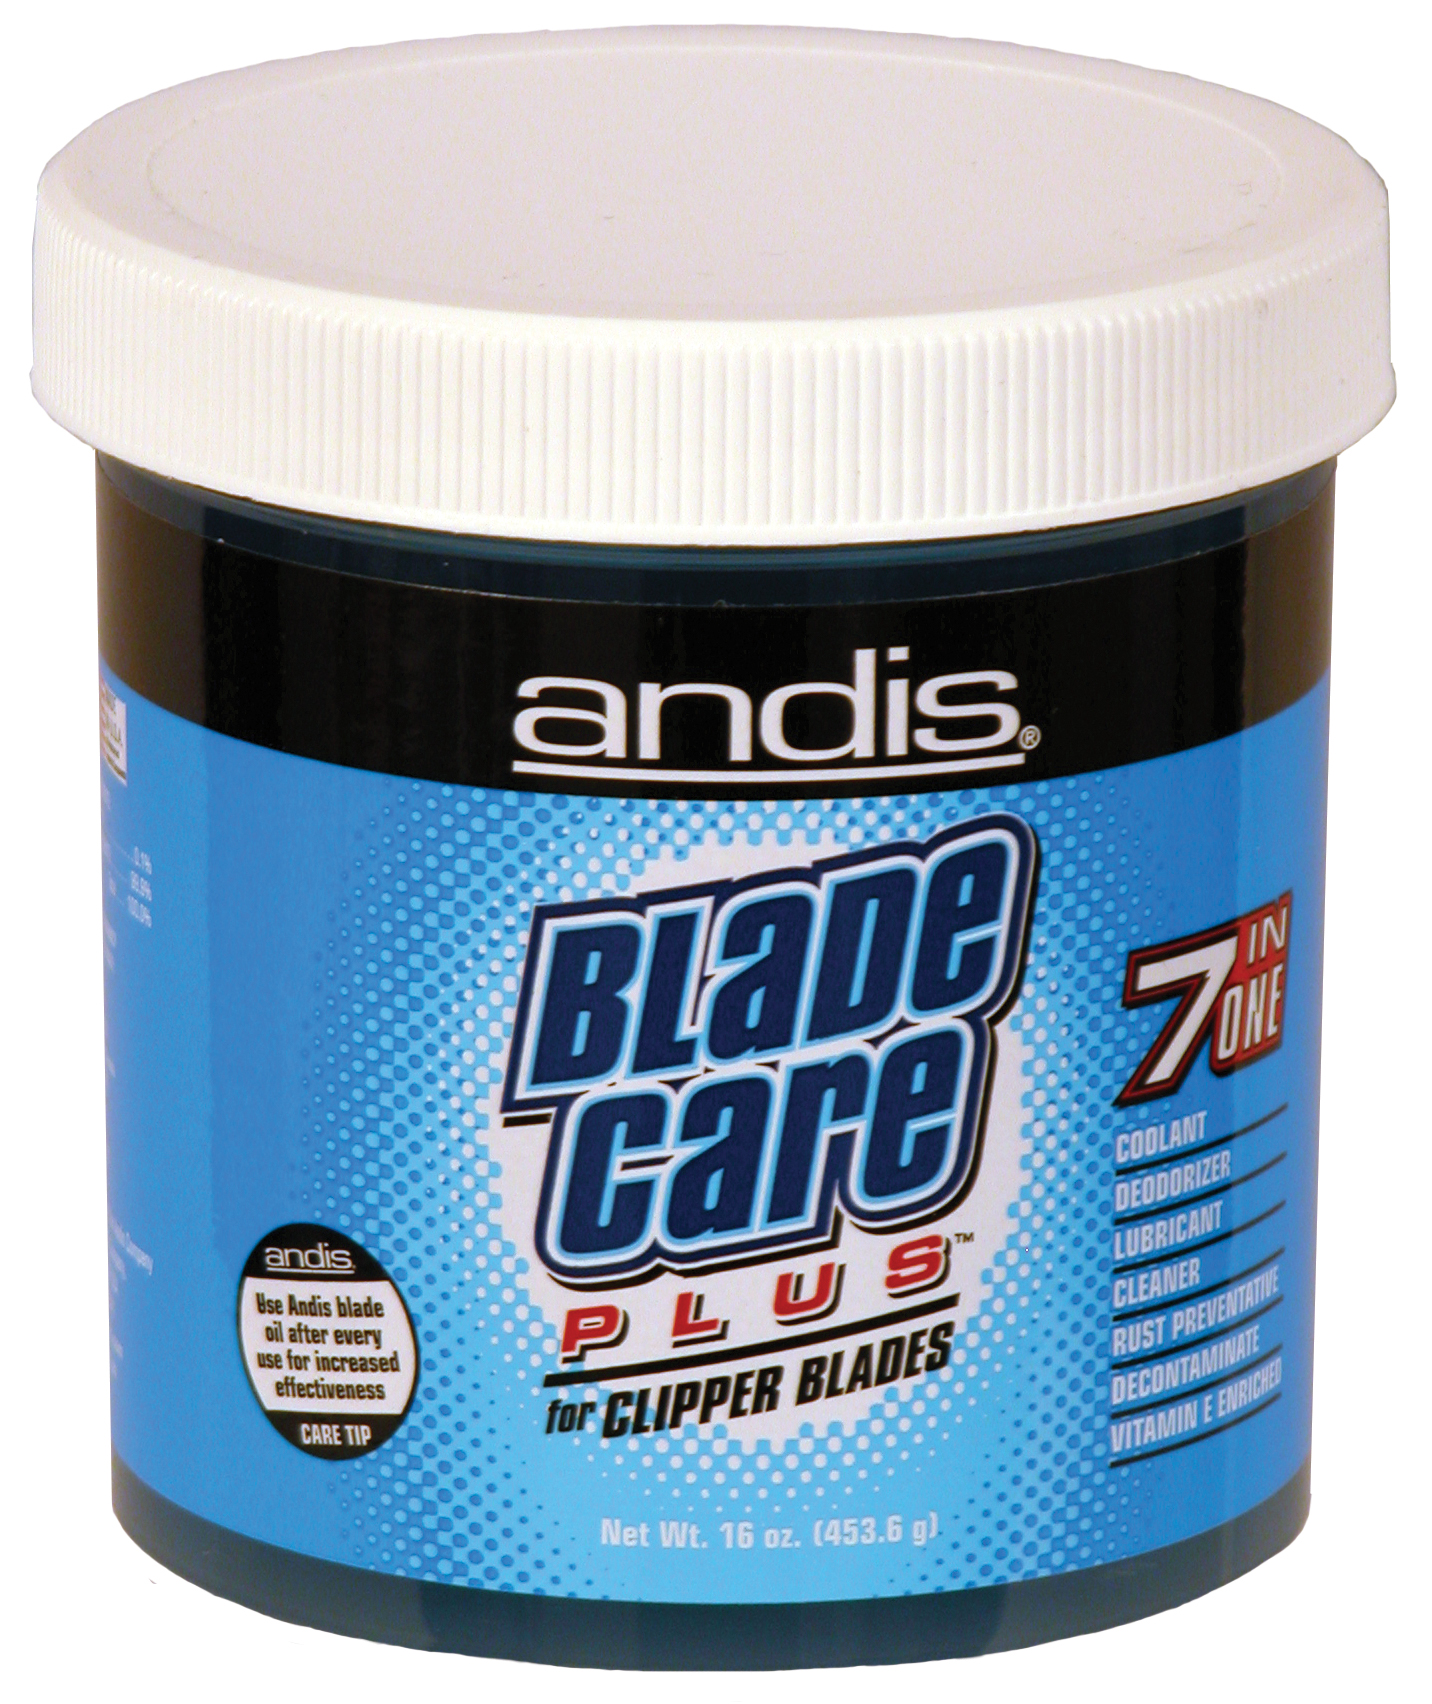 Andis Blade care plus 7 in 1 400g